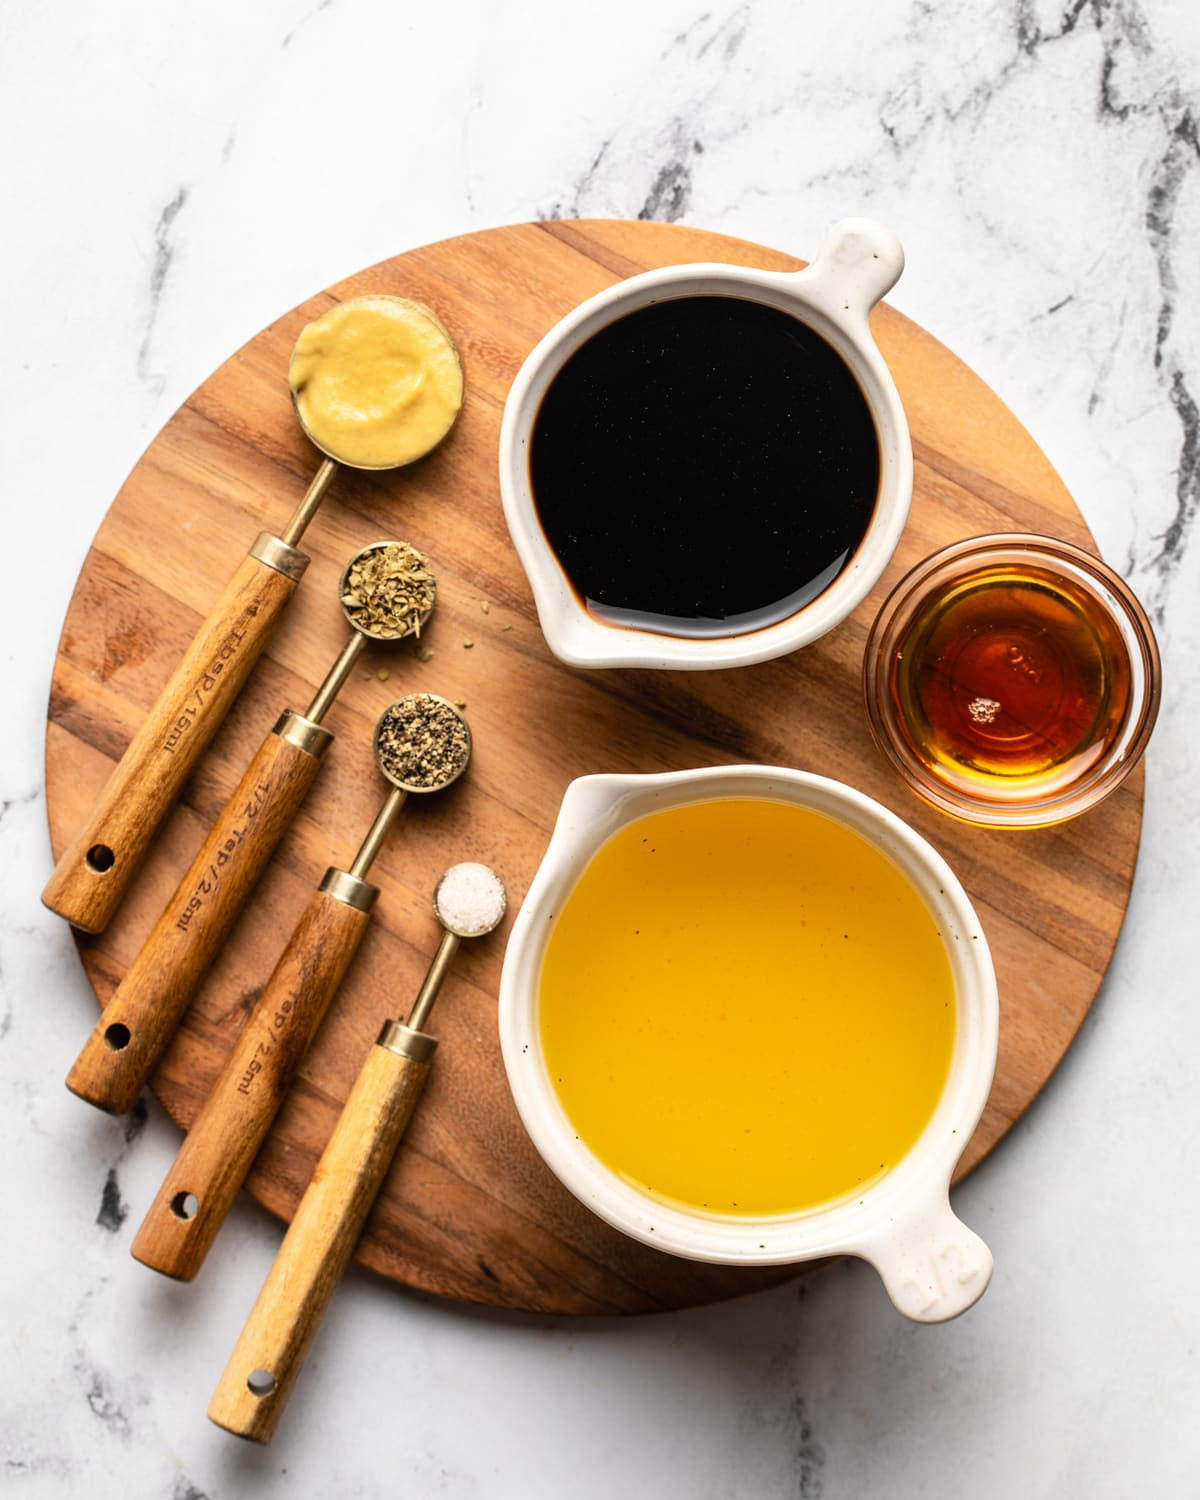 ingredients for balsamic vinaigrette in measuring cups on wooden serving board